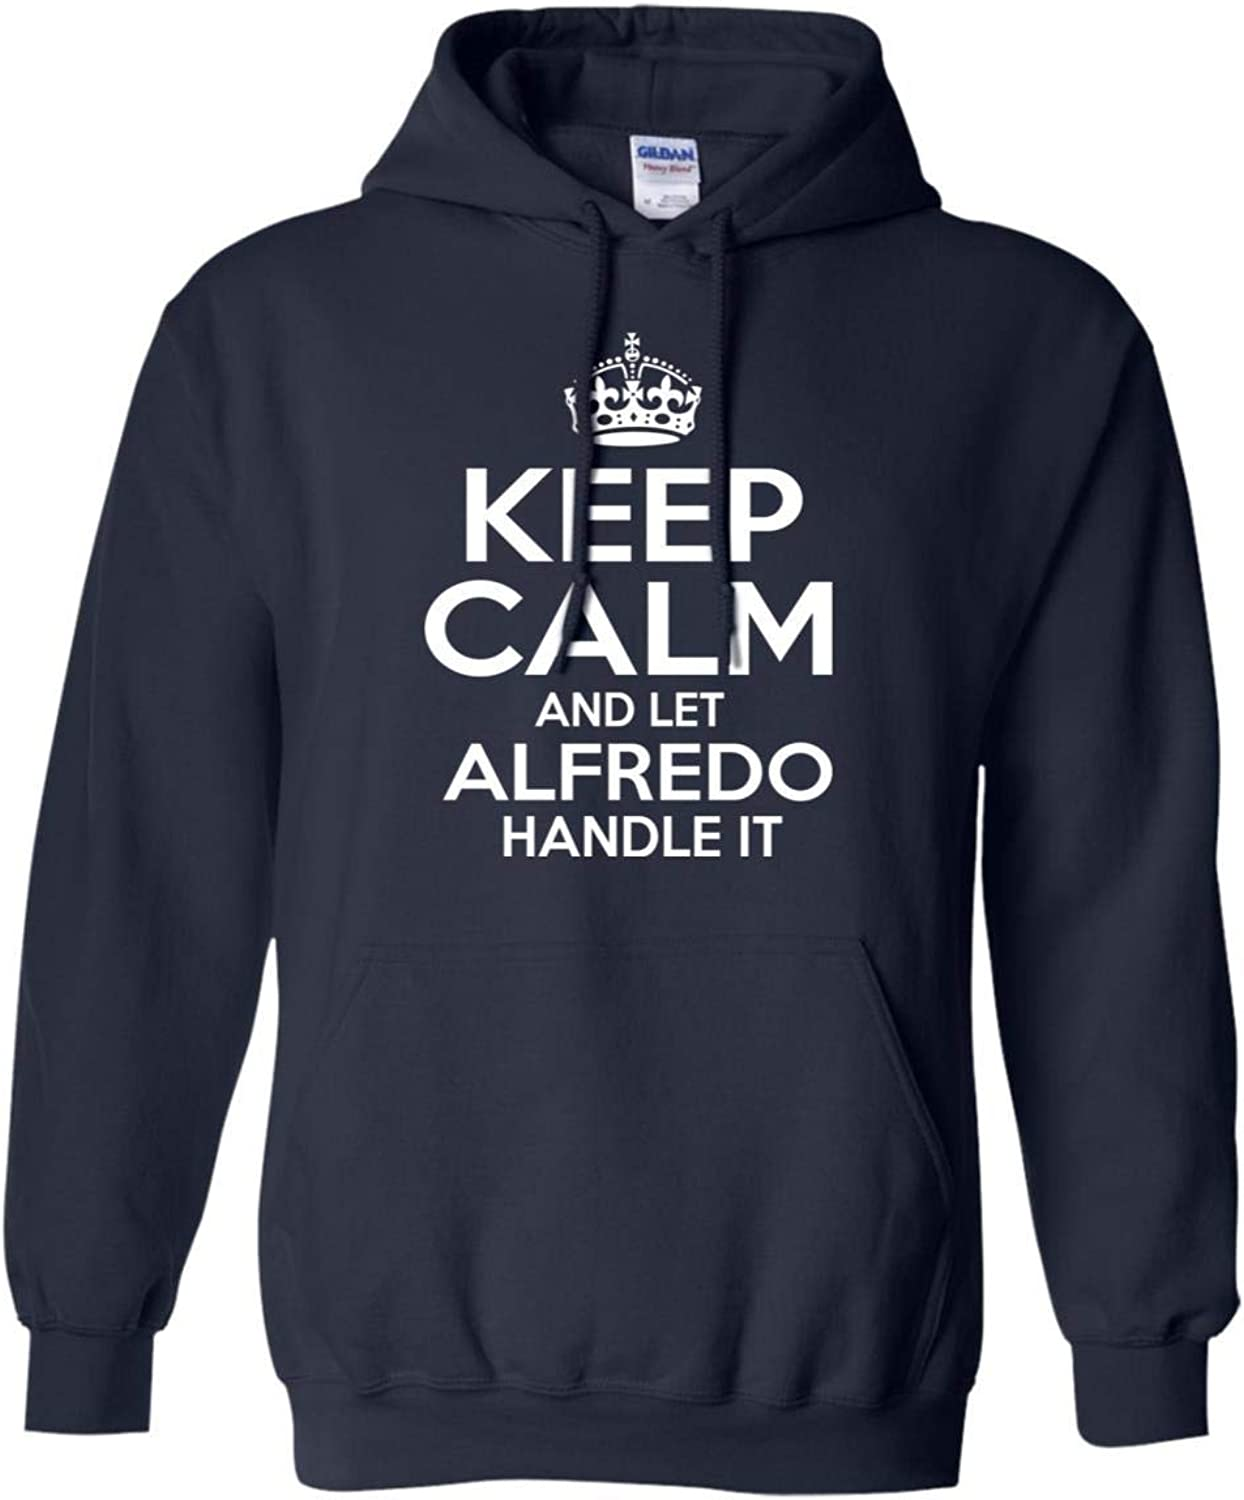 Tee Shine Keep Calm and Let Alfredo Handle It Sweatshirt Personalized Name Christmas, Birthday Gifts Ideas Black, Navy S5XL